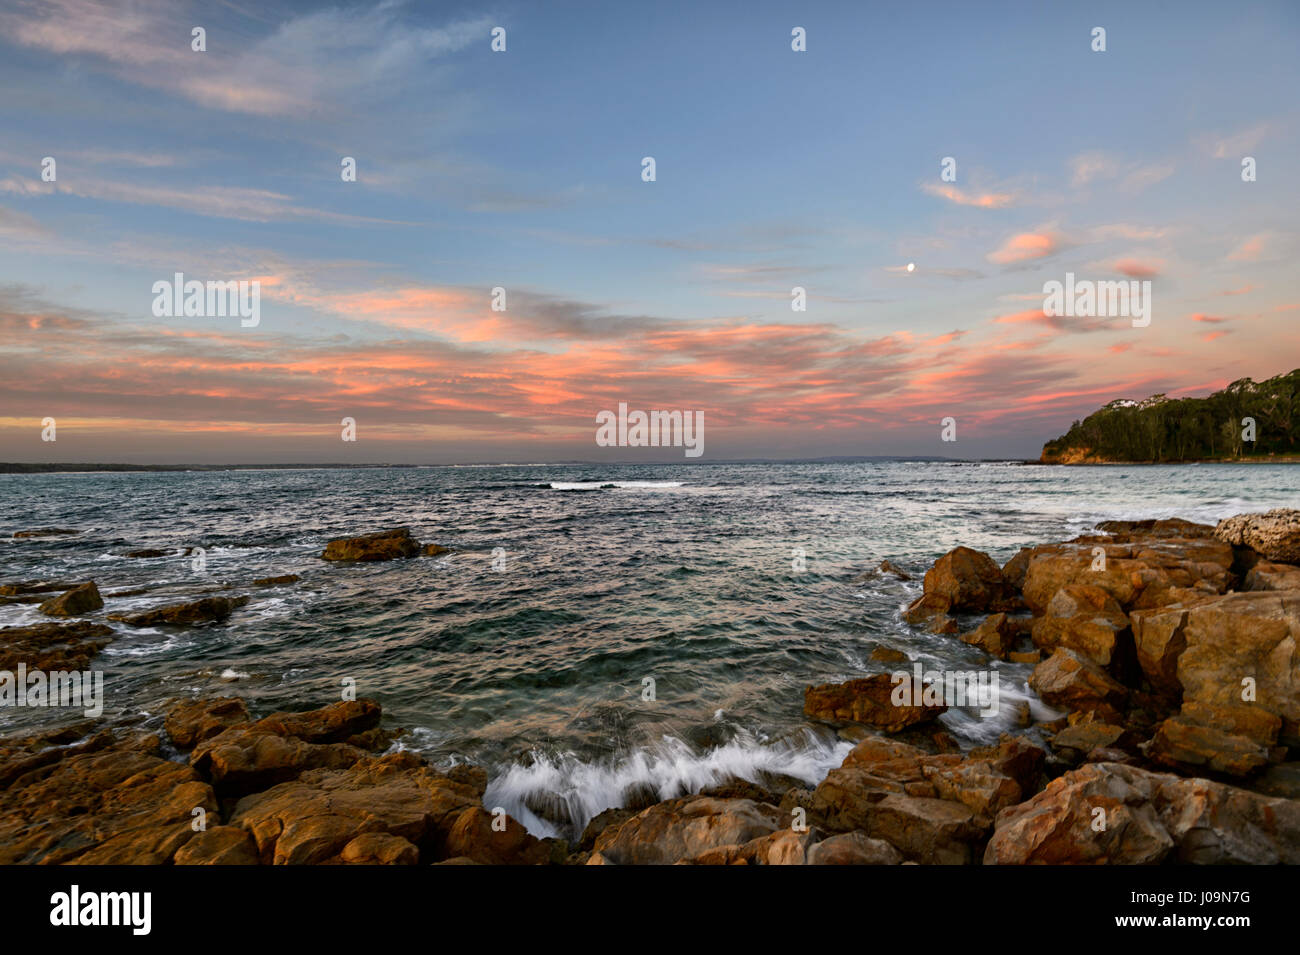 Sunset over Washerwoman's Beach, Bendalong Beach, Shoalhaven, South Coast, New South Wales, NSW, Australia - Stock Image